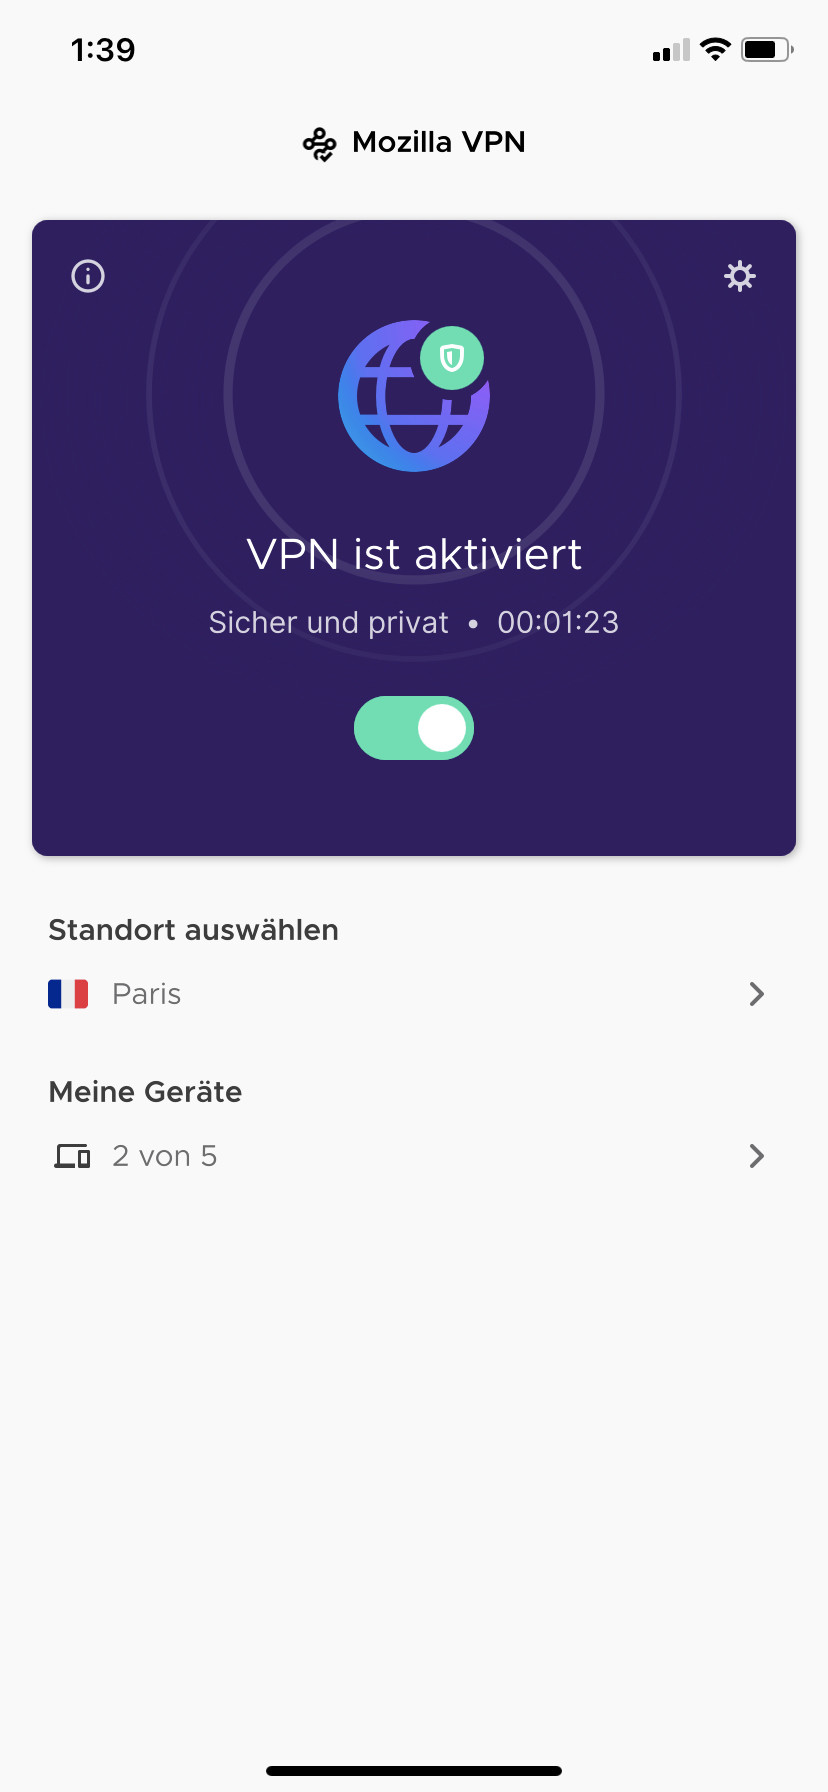 Screenshot 1 - Mozilla VPN (App für iPhone & iPad)